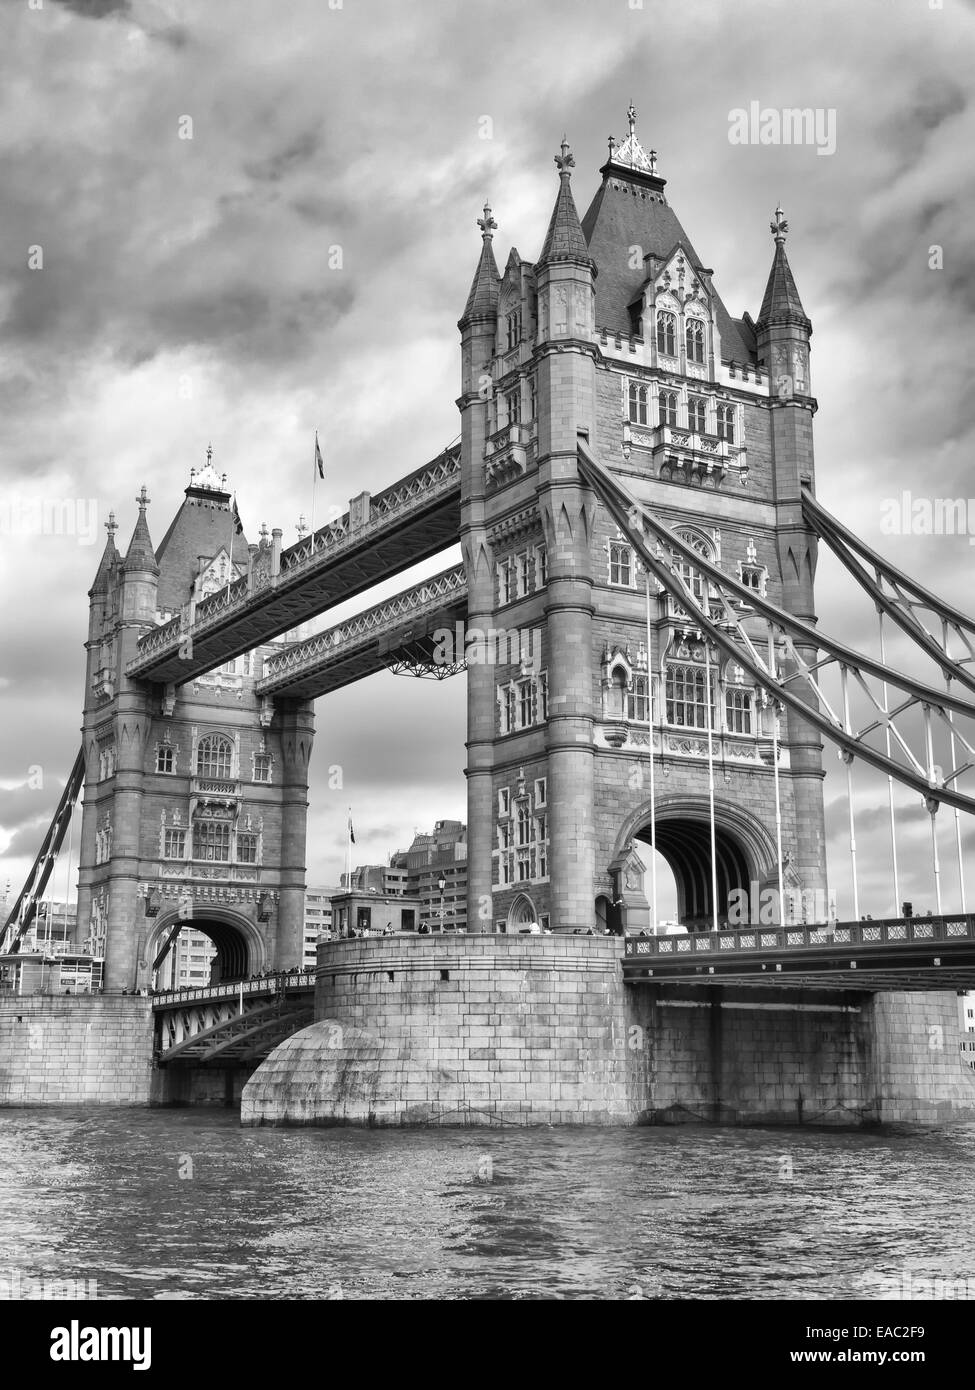 Tower Bridge in the city of London - Stock Image